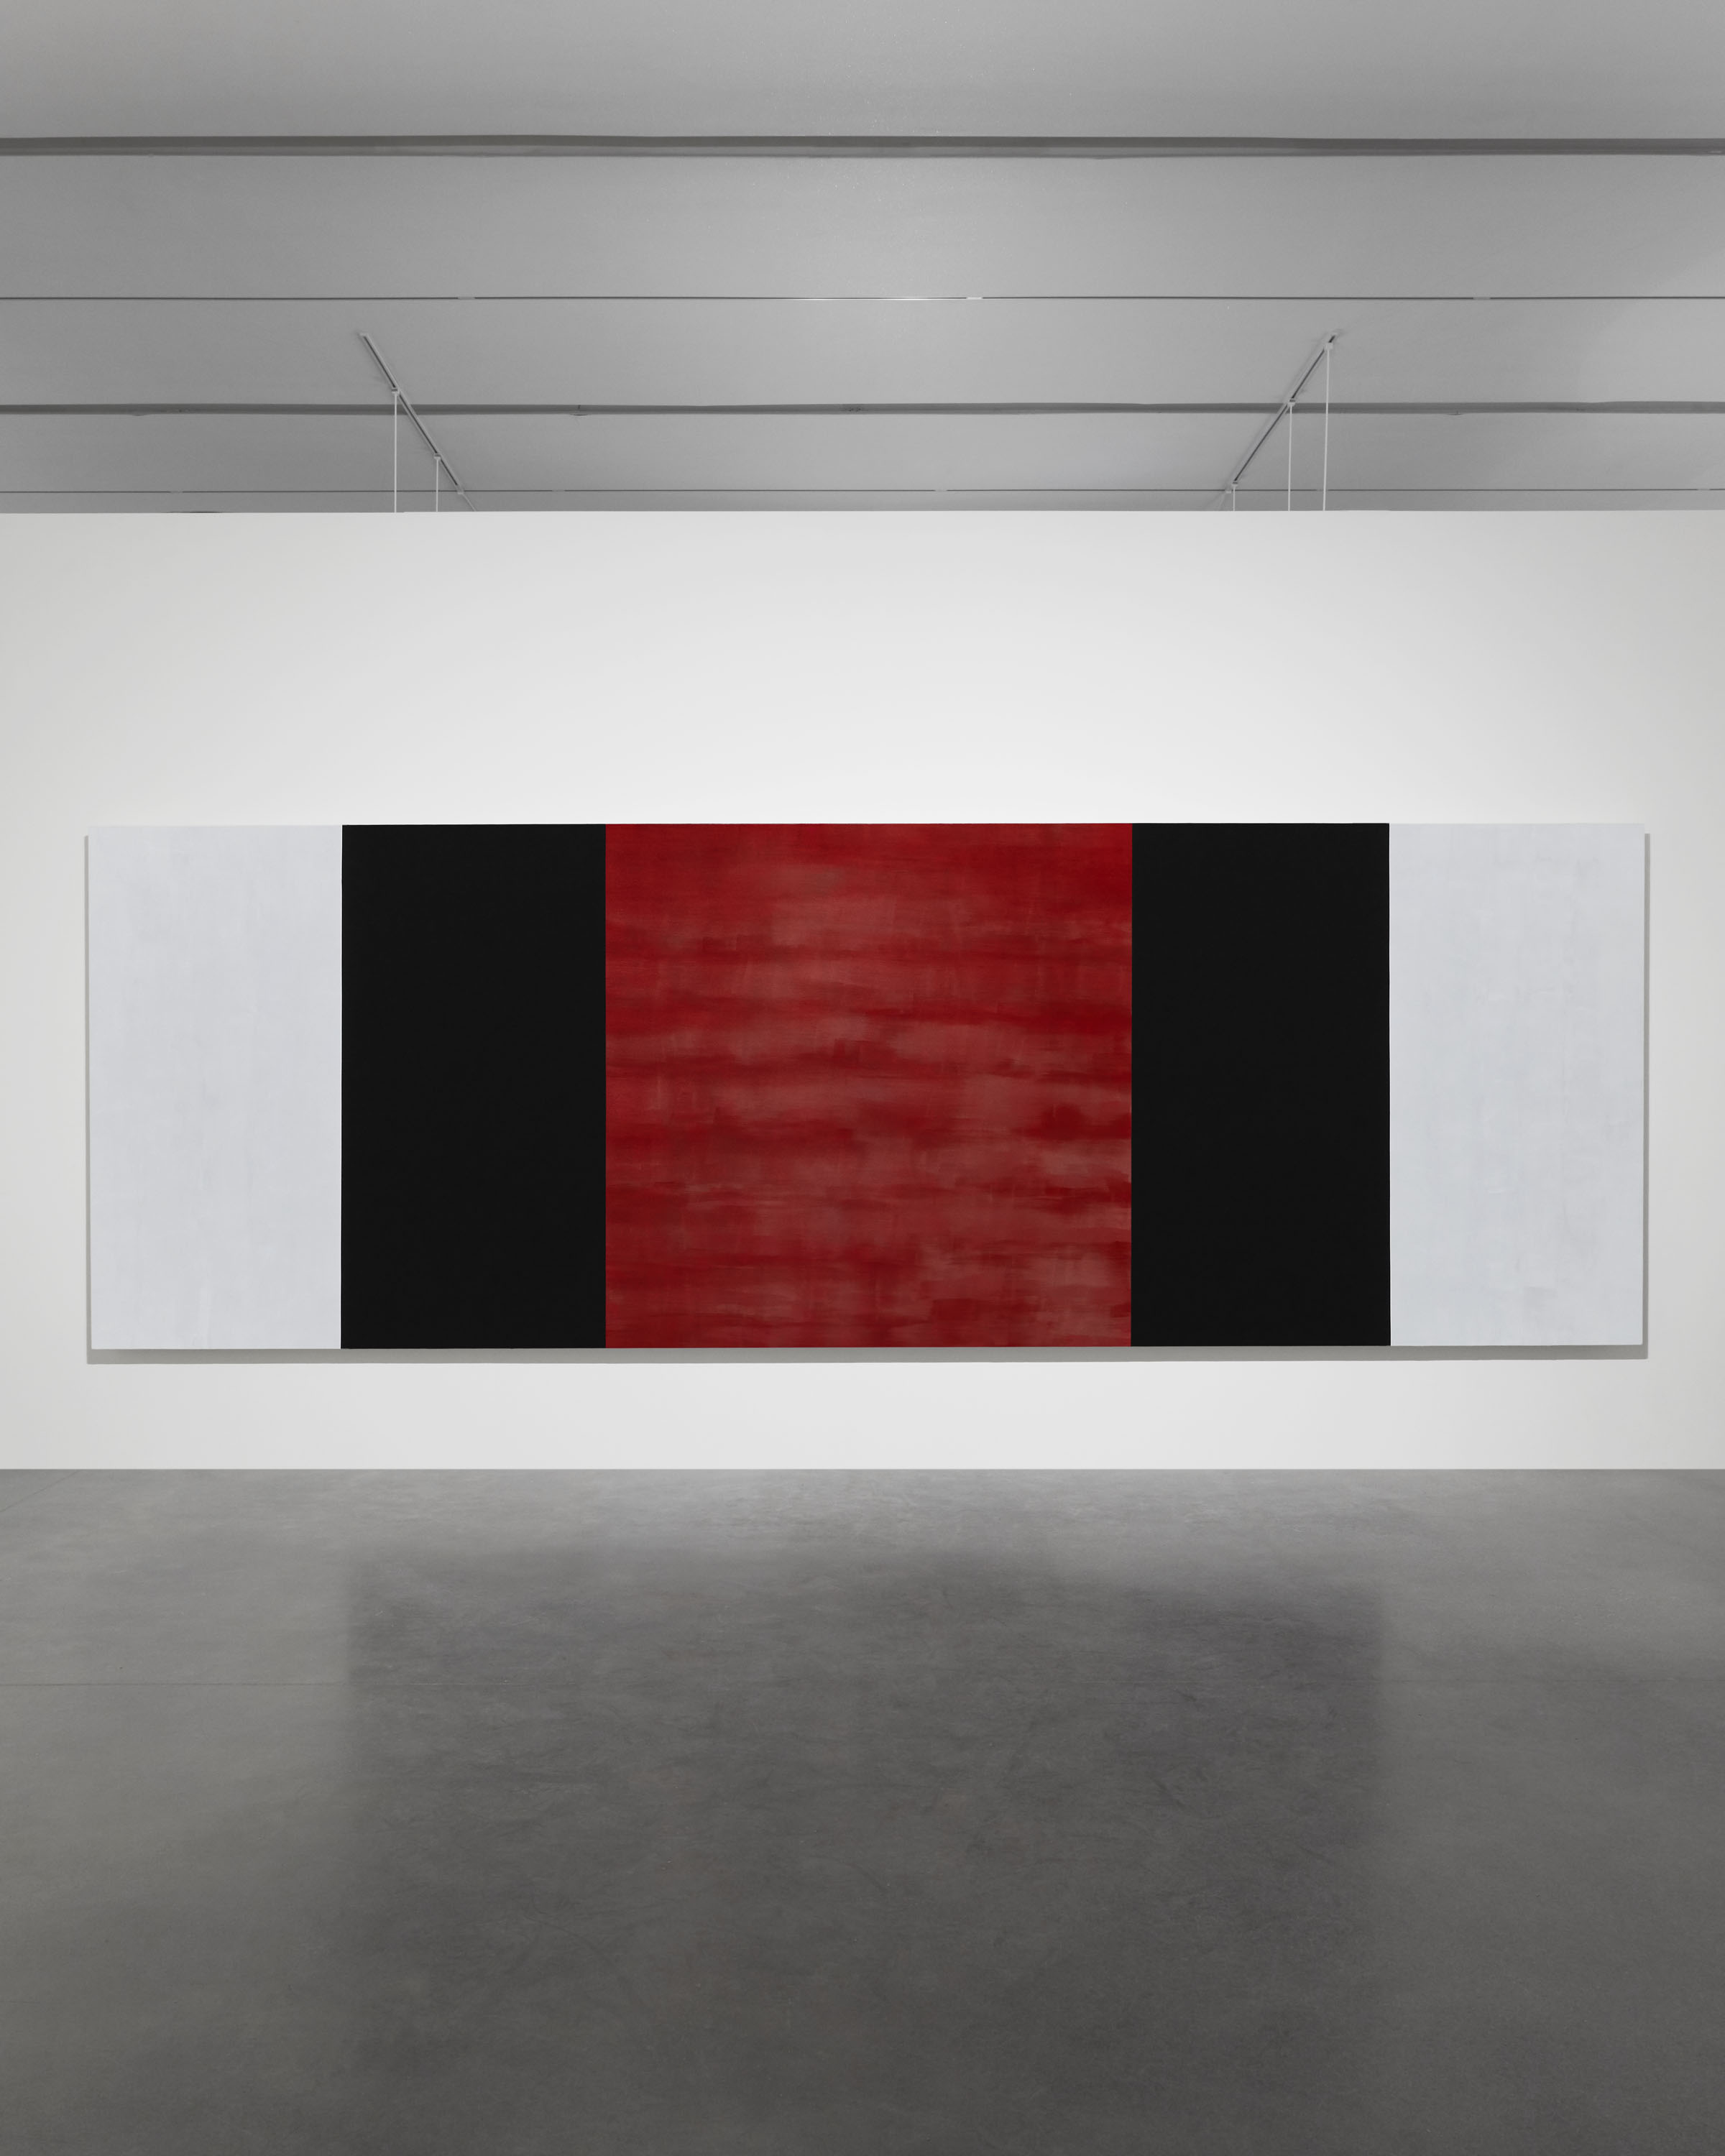 "Untitled (White, Black, Red, Beveled), 2019 glass microspheres in acrylic on canvas 78"" × 19' 6"" × 4"" (198.1 cm × 594.4 cm × 10.2 cm) Courtesy Pace Gallery"